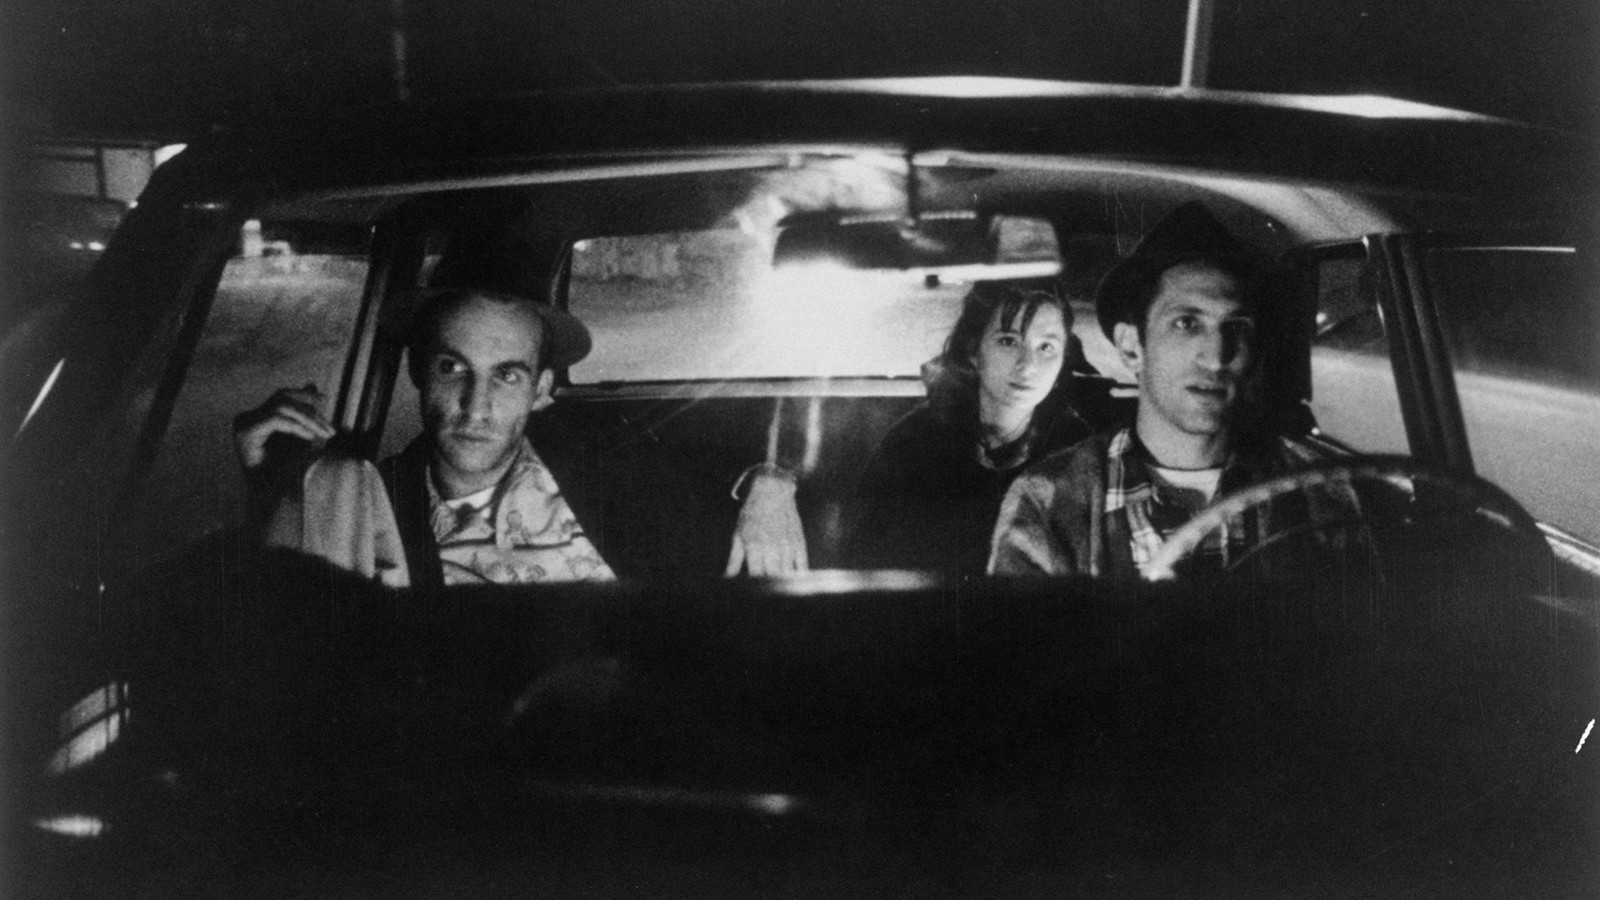 still-of-richard-edson-eszter-balint-and-john-lurie-in-stranger-than-paradise-1984-large-picture-1600x900-c-default